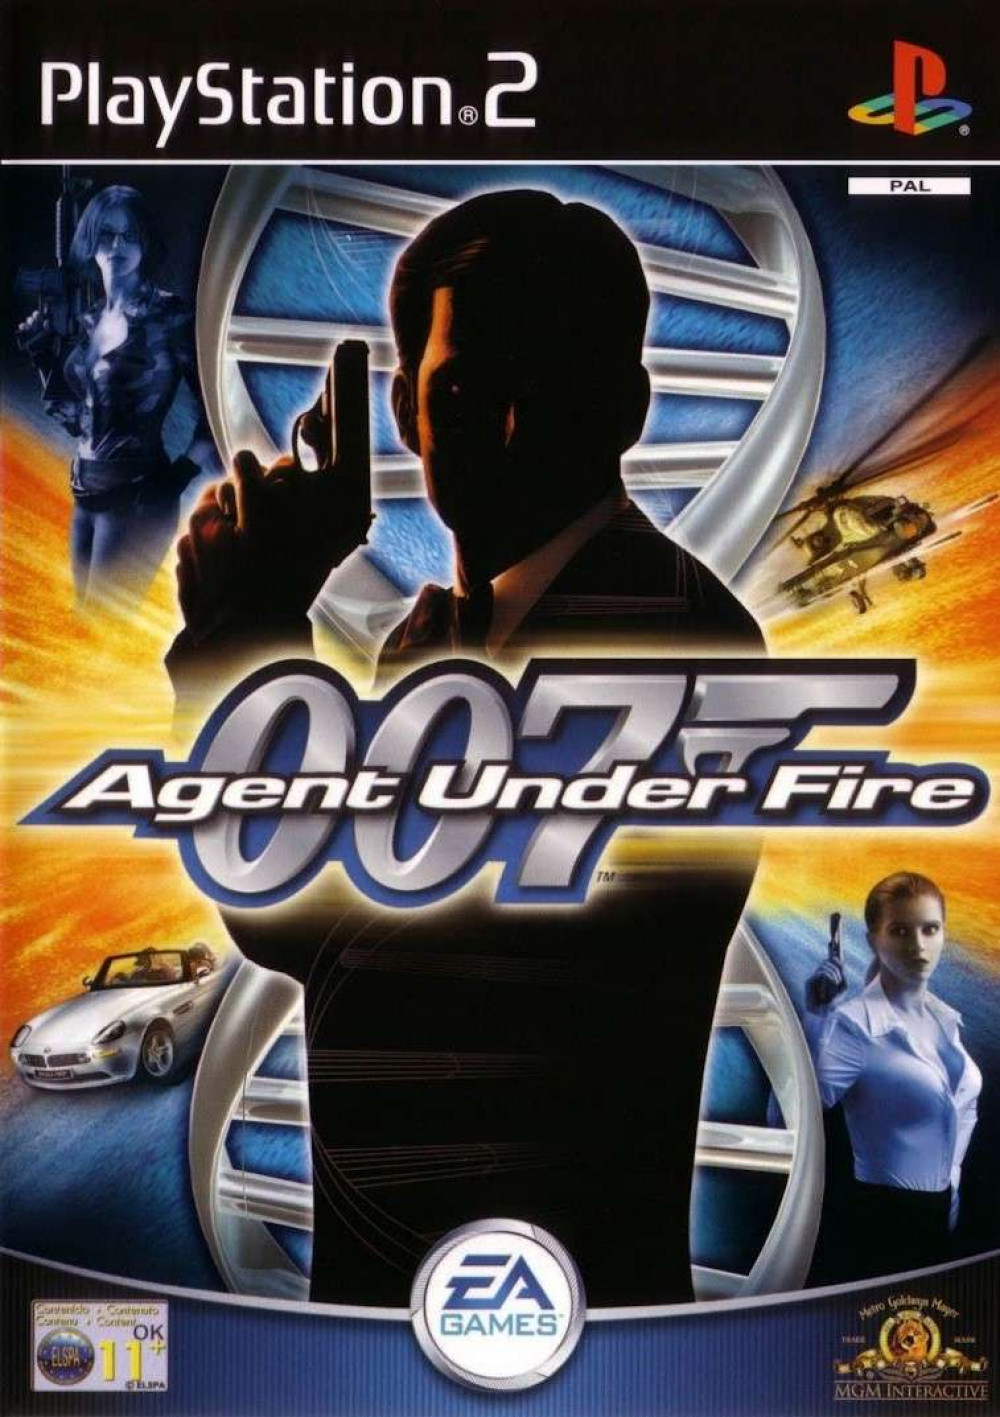 James Bond 007 in Agent Under Fire PS2